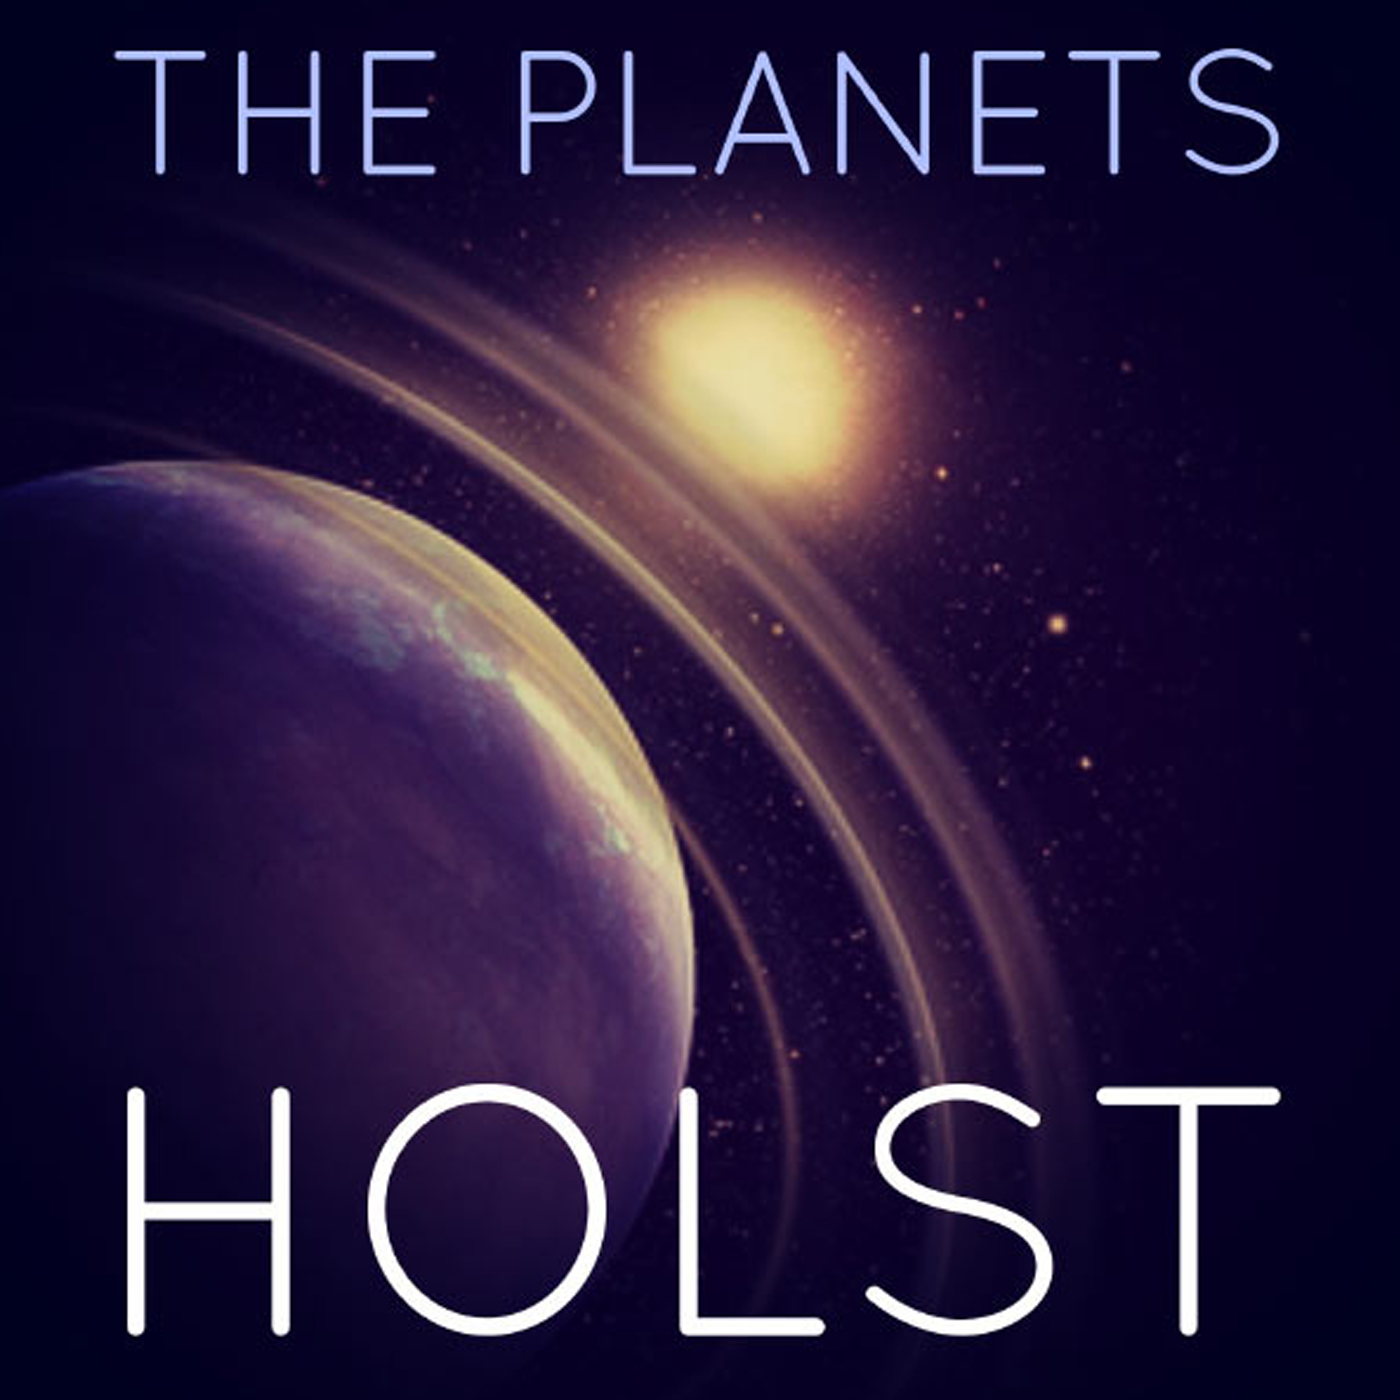 Gustav Holst - The Planets Suite [Op. 32] - phonosti.co